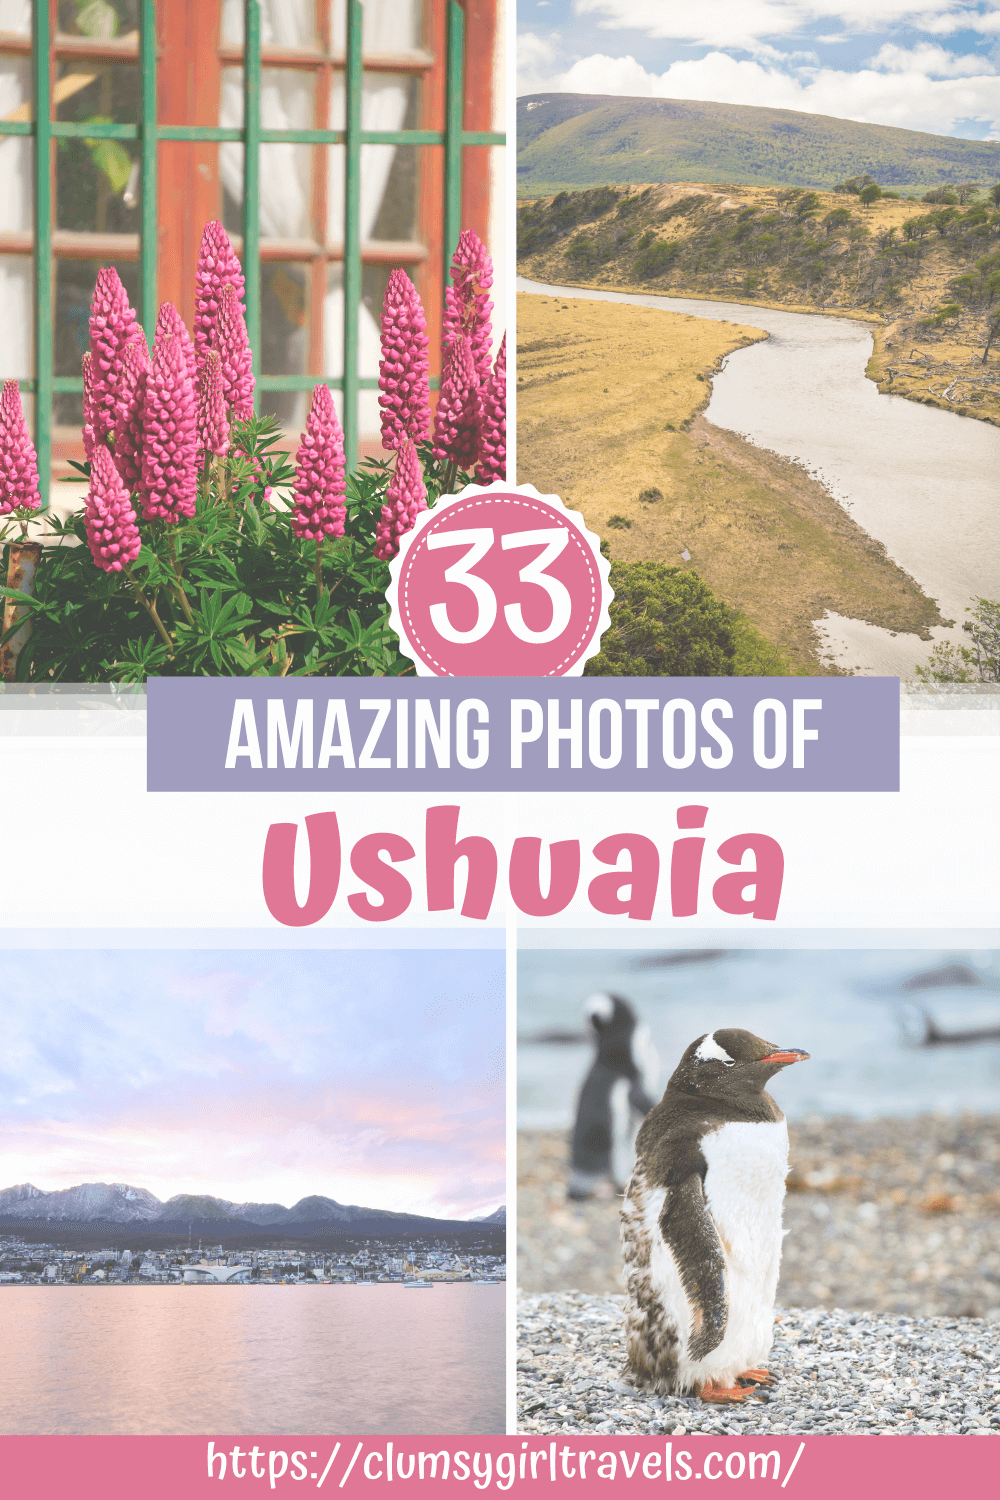 Ushuaia, Argentina is a must visit destination for those that love nature, seafood and penguins. check out this photo guide for Ushuaia, Argentina. #visitushuaia #ushuaiaargentina #visitargentina #photoguide #ushuaiaphotoguide